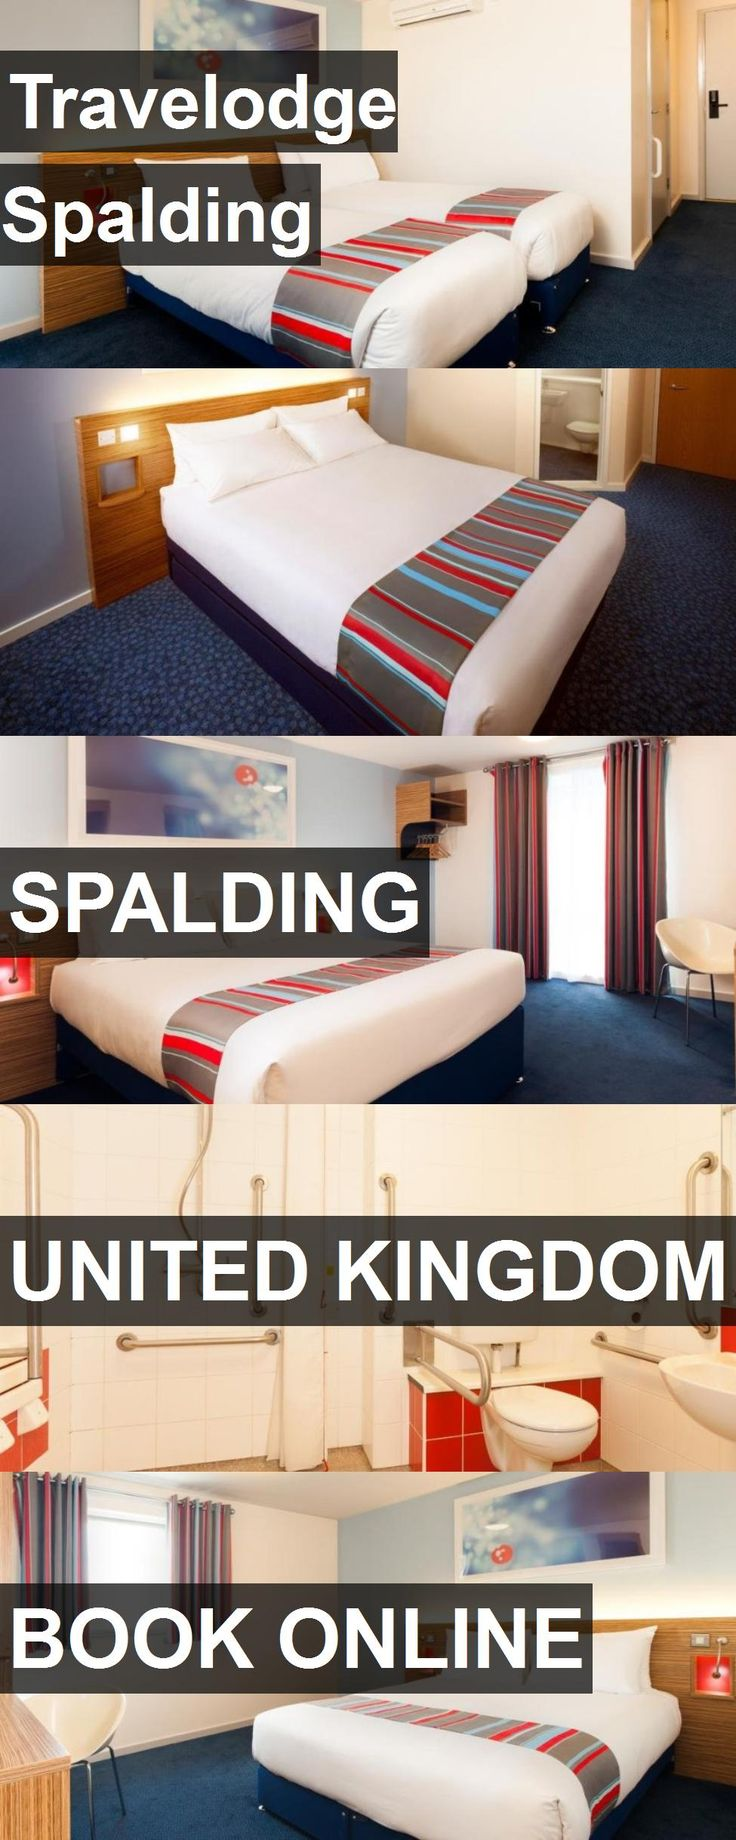 Hotel Travelodge Spalding in Spalding, United Kingdom. For more information, photos, reviews and best prices please follow the link. #UnitedKingdom #Spalding #travel #vacation #hotel